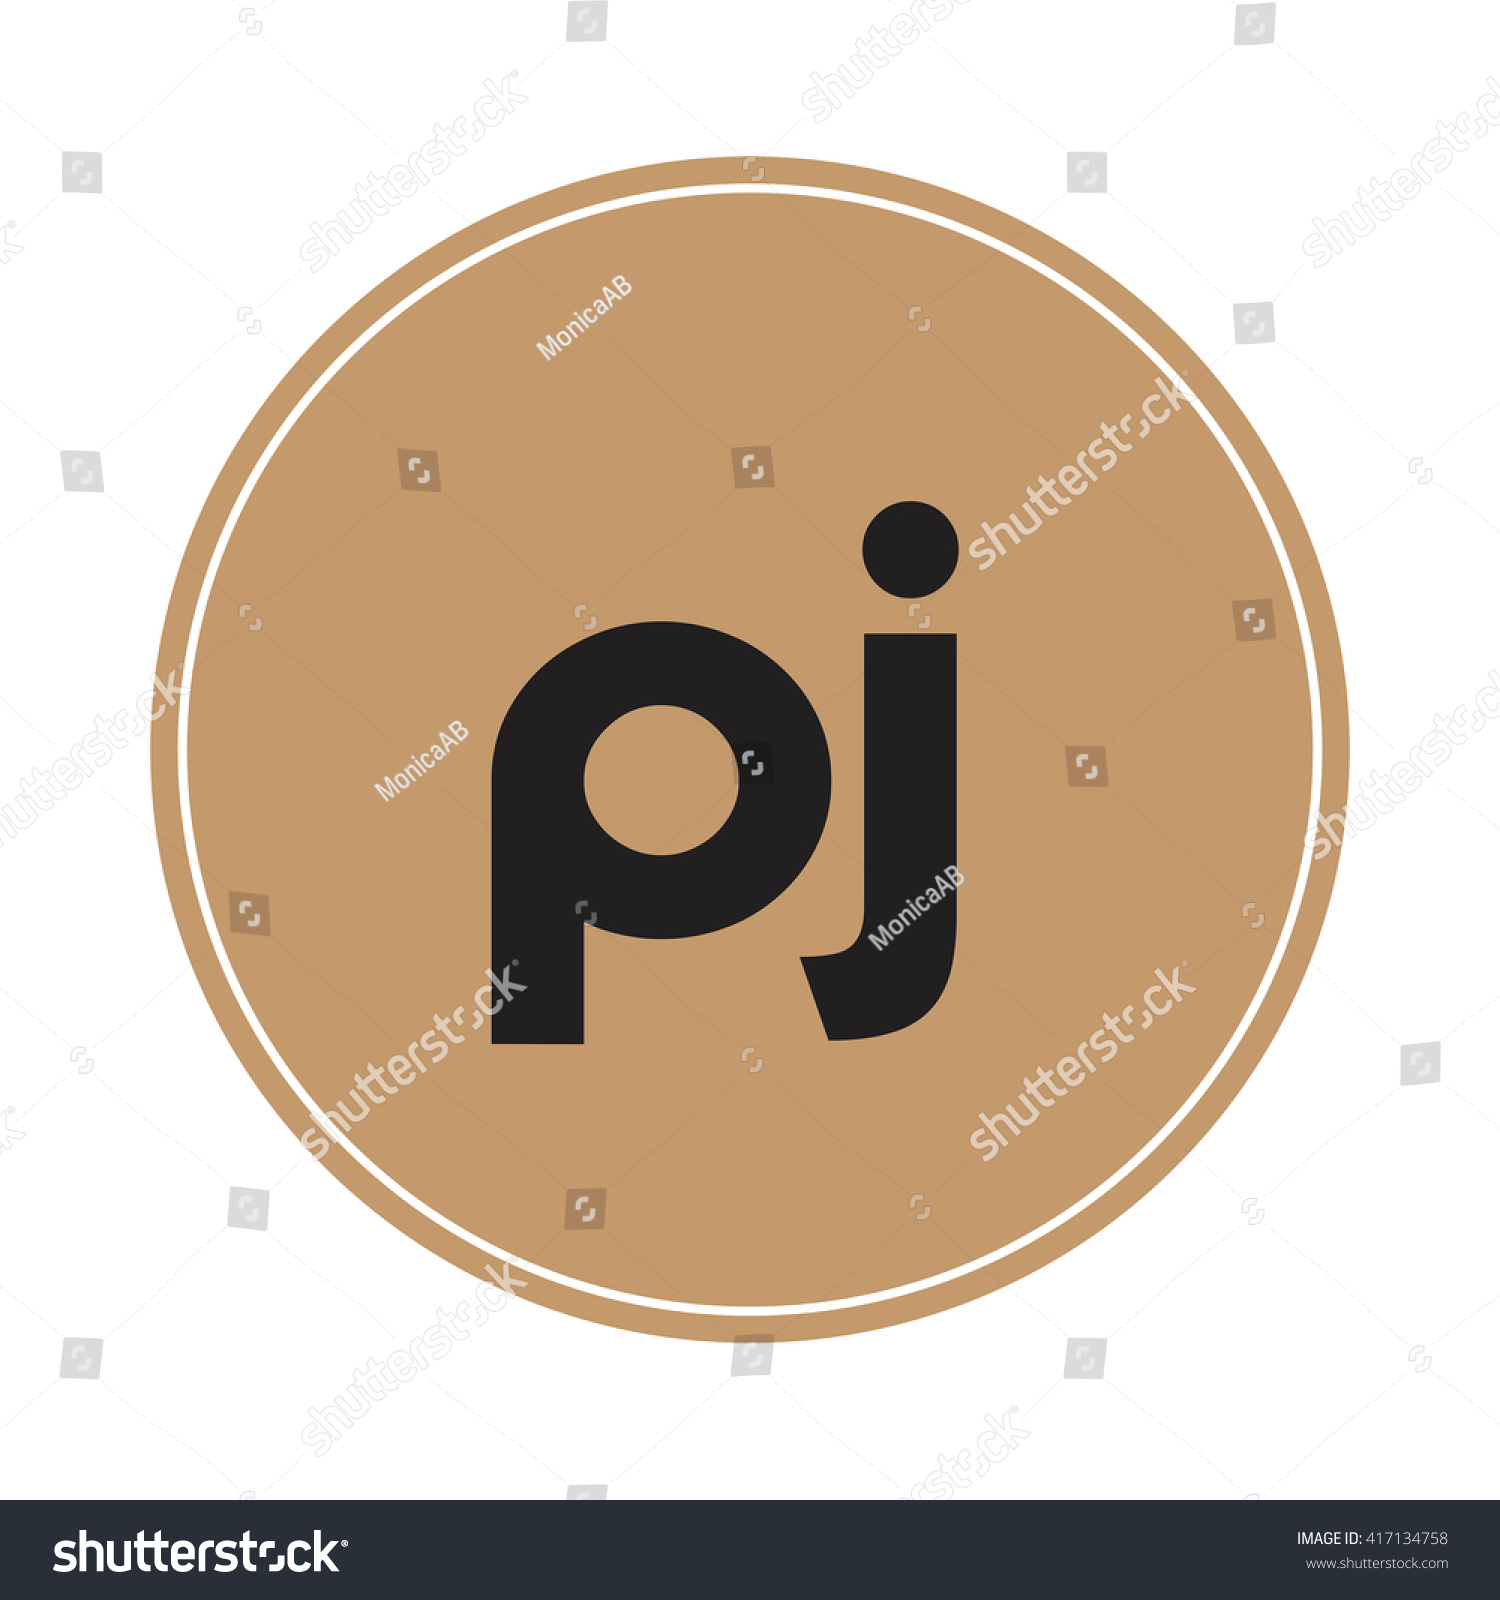 Pj Brown Letters Abstract Background Logo Stock Vector